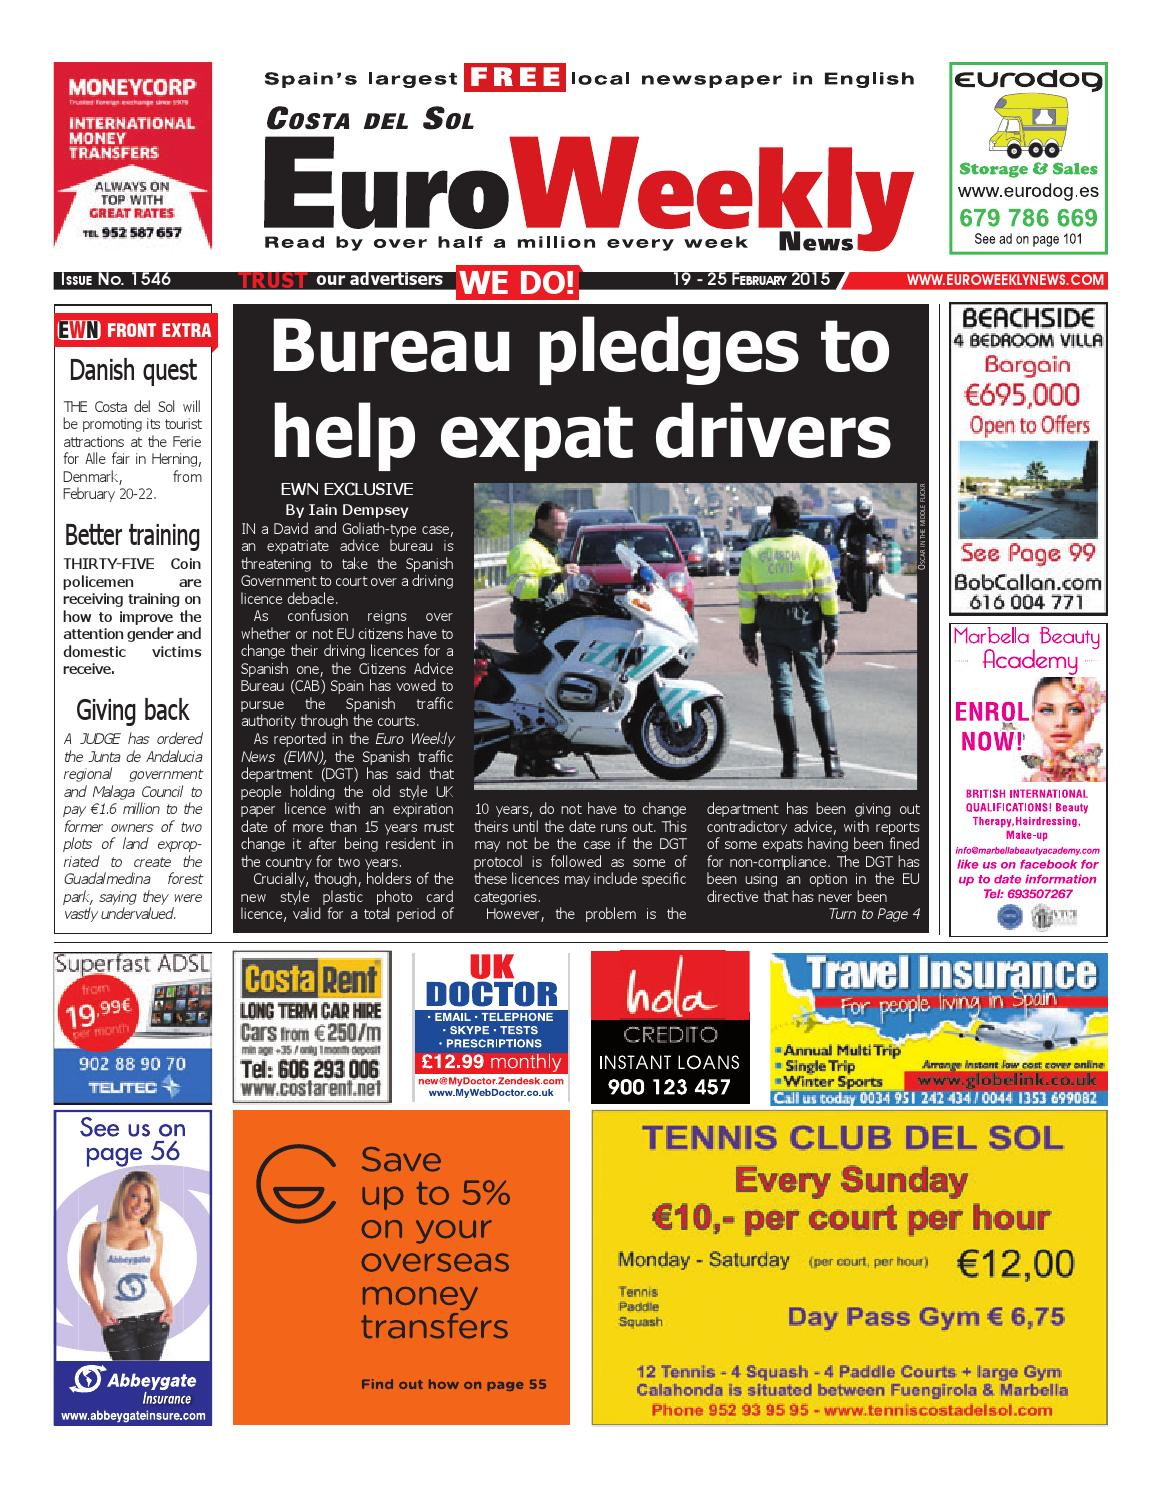 Euro weekly news costa del sol 19 25 february 2015 issue 1546 by euro weekly news costa del sol 19 25 february 2015 issue 1546 by euro weekly news media sa issuu fandeluxe Choice Image